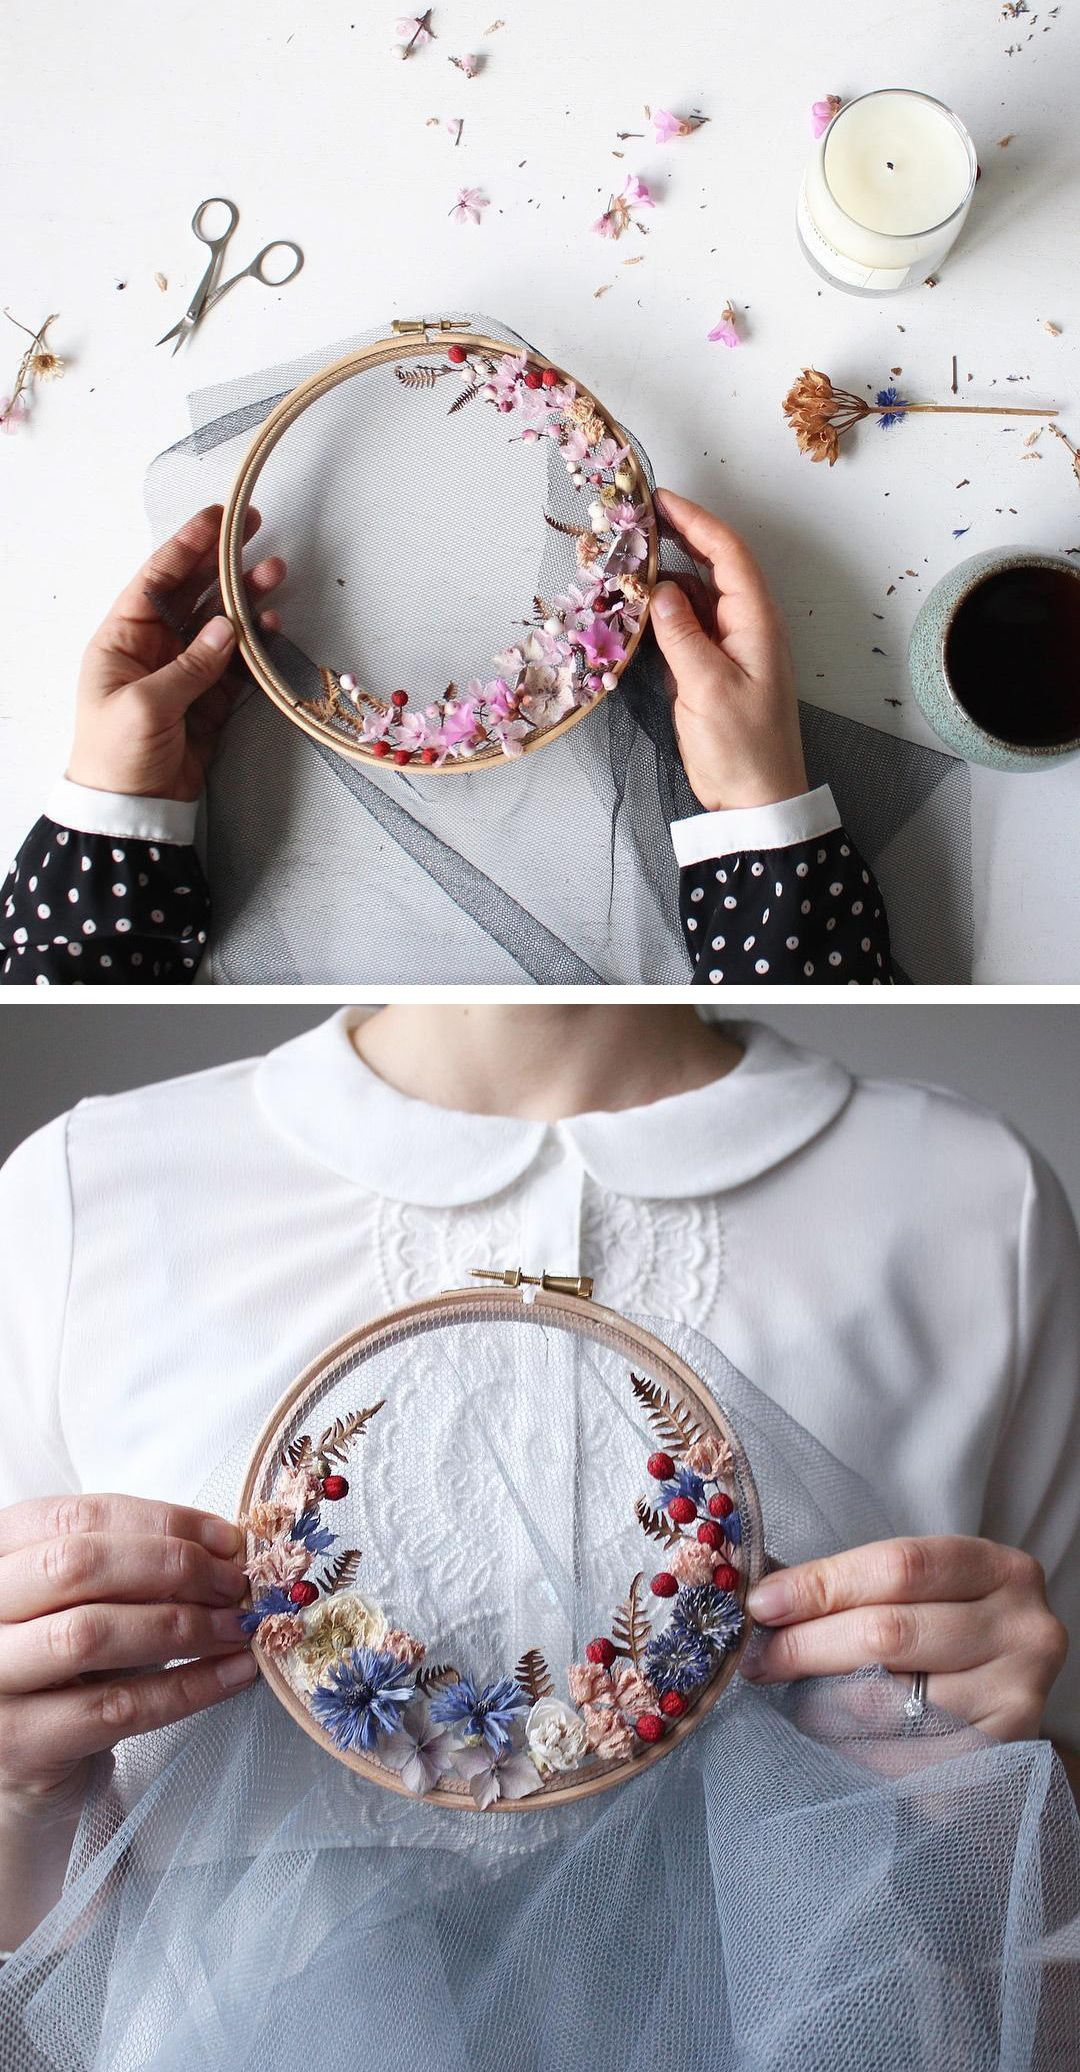 Exquisite Floral Wreath Weavings are a Beautiful Frame to View the ...